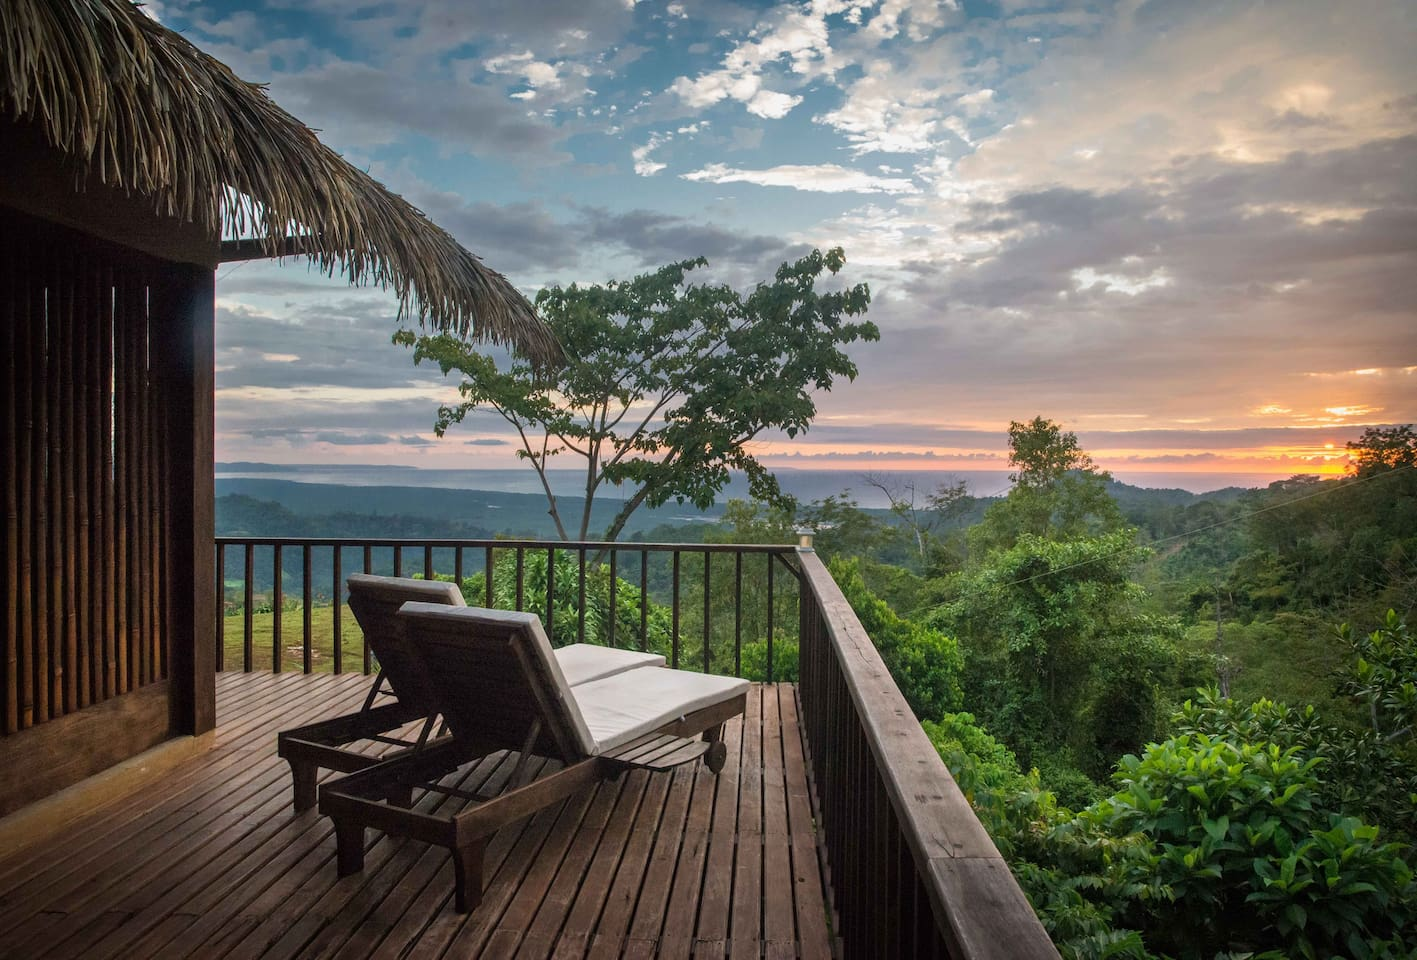 The front corner of the wrap-around balcony hangs over the jungle canopy to the right and offers spectacular sea & valley views straight ahead. A great place for a smoothie, watching the sunset from the comfort of one of our teak sun loungers